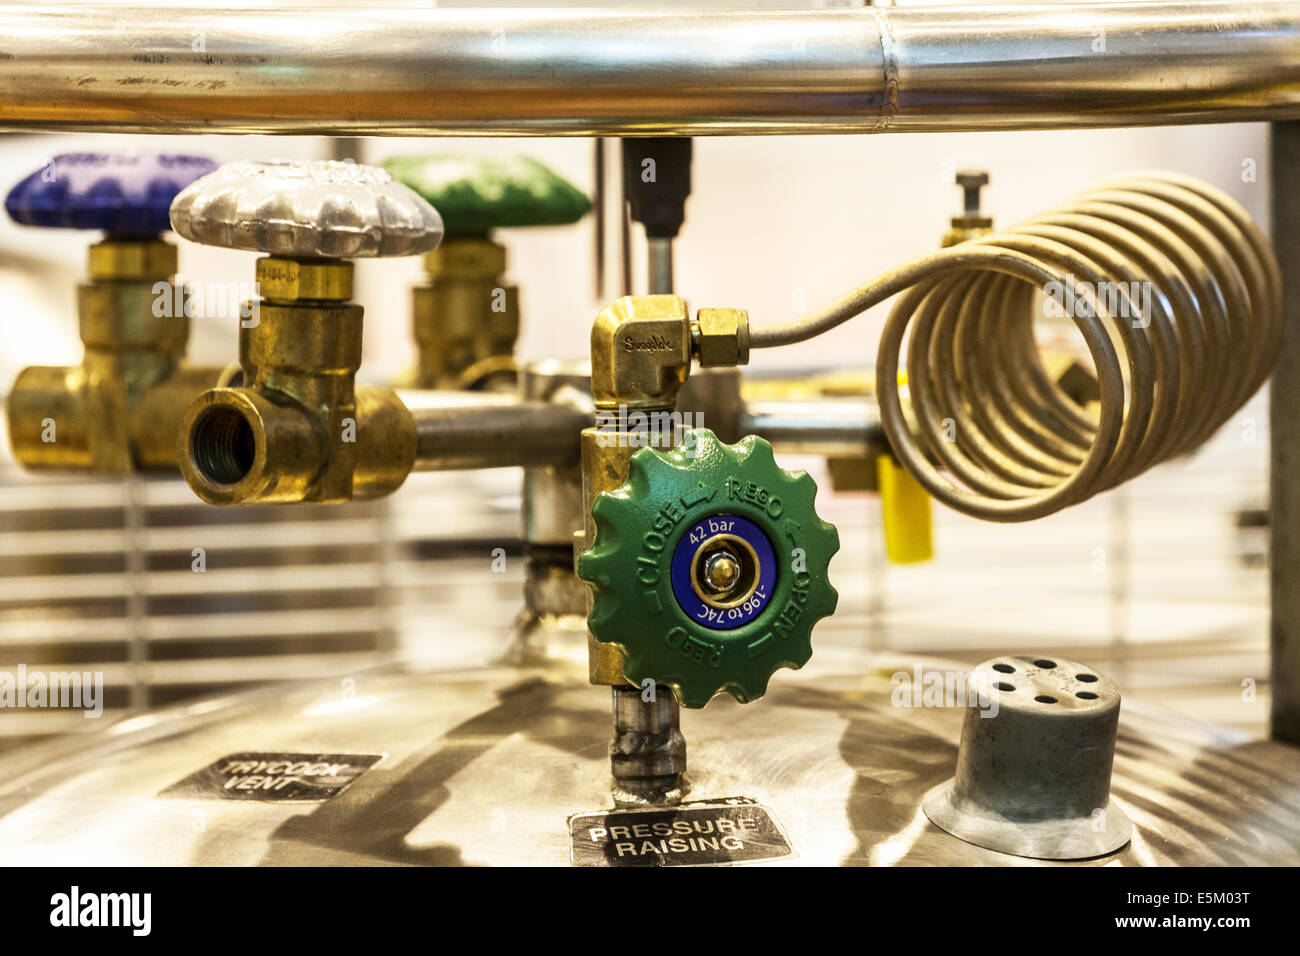 A pressure valve on top of a cylinder of gas in a science research laboratory. - Stock Image